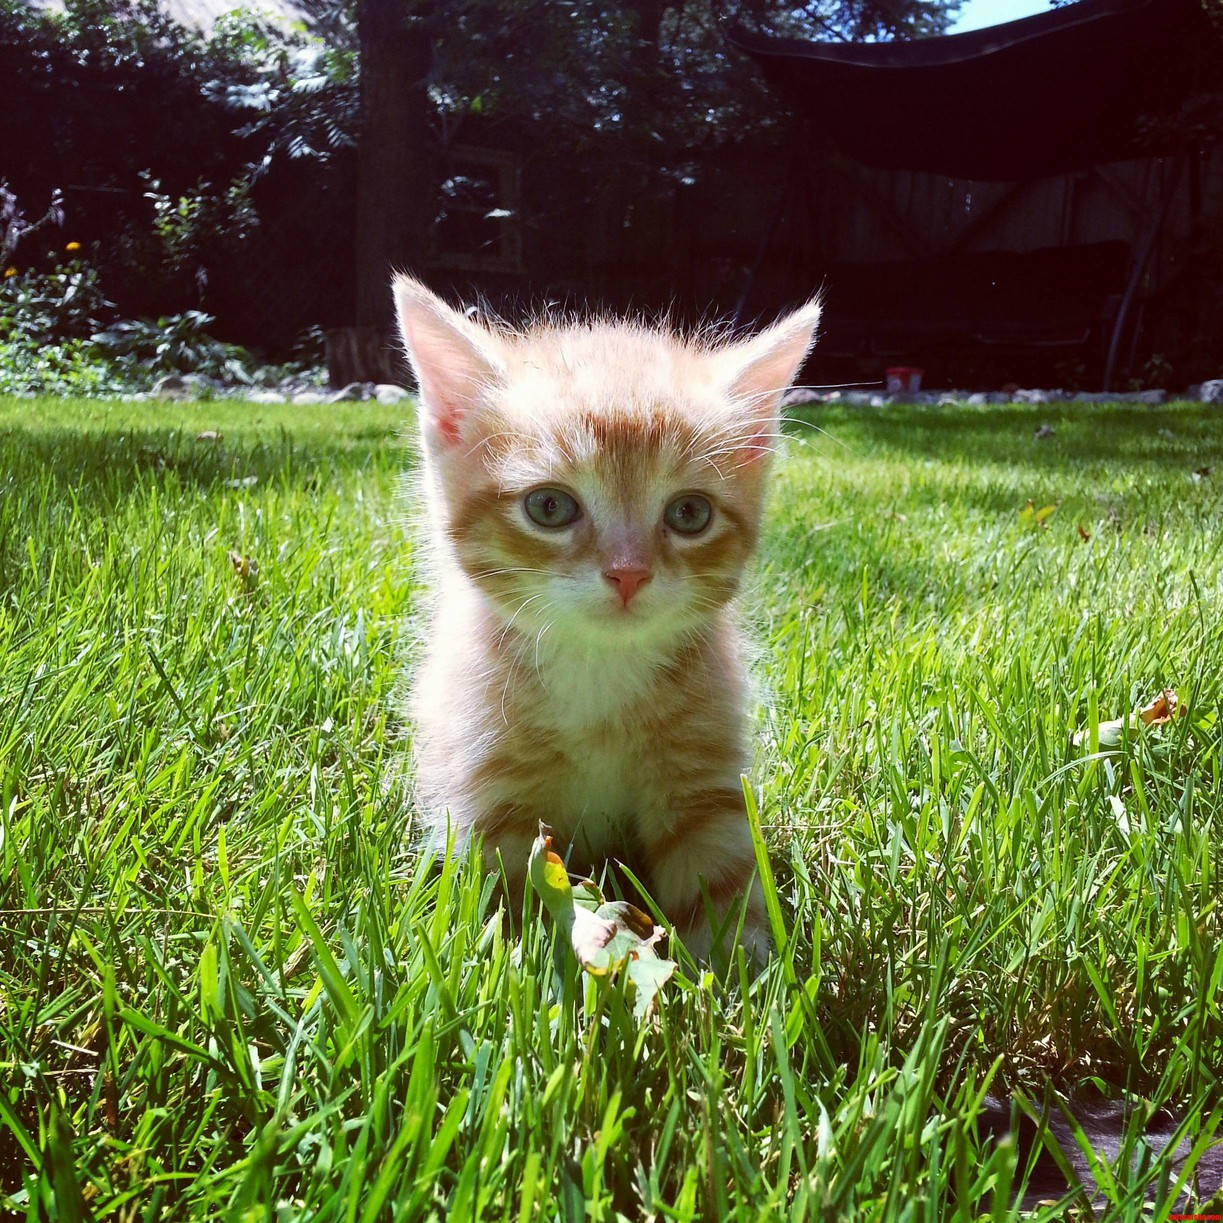 Pancakes In The Grass. One Of The Earliest Pictures Of My Paraplegic Kitty